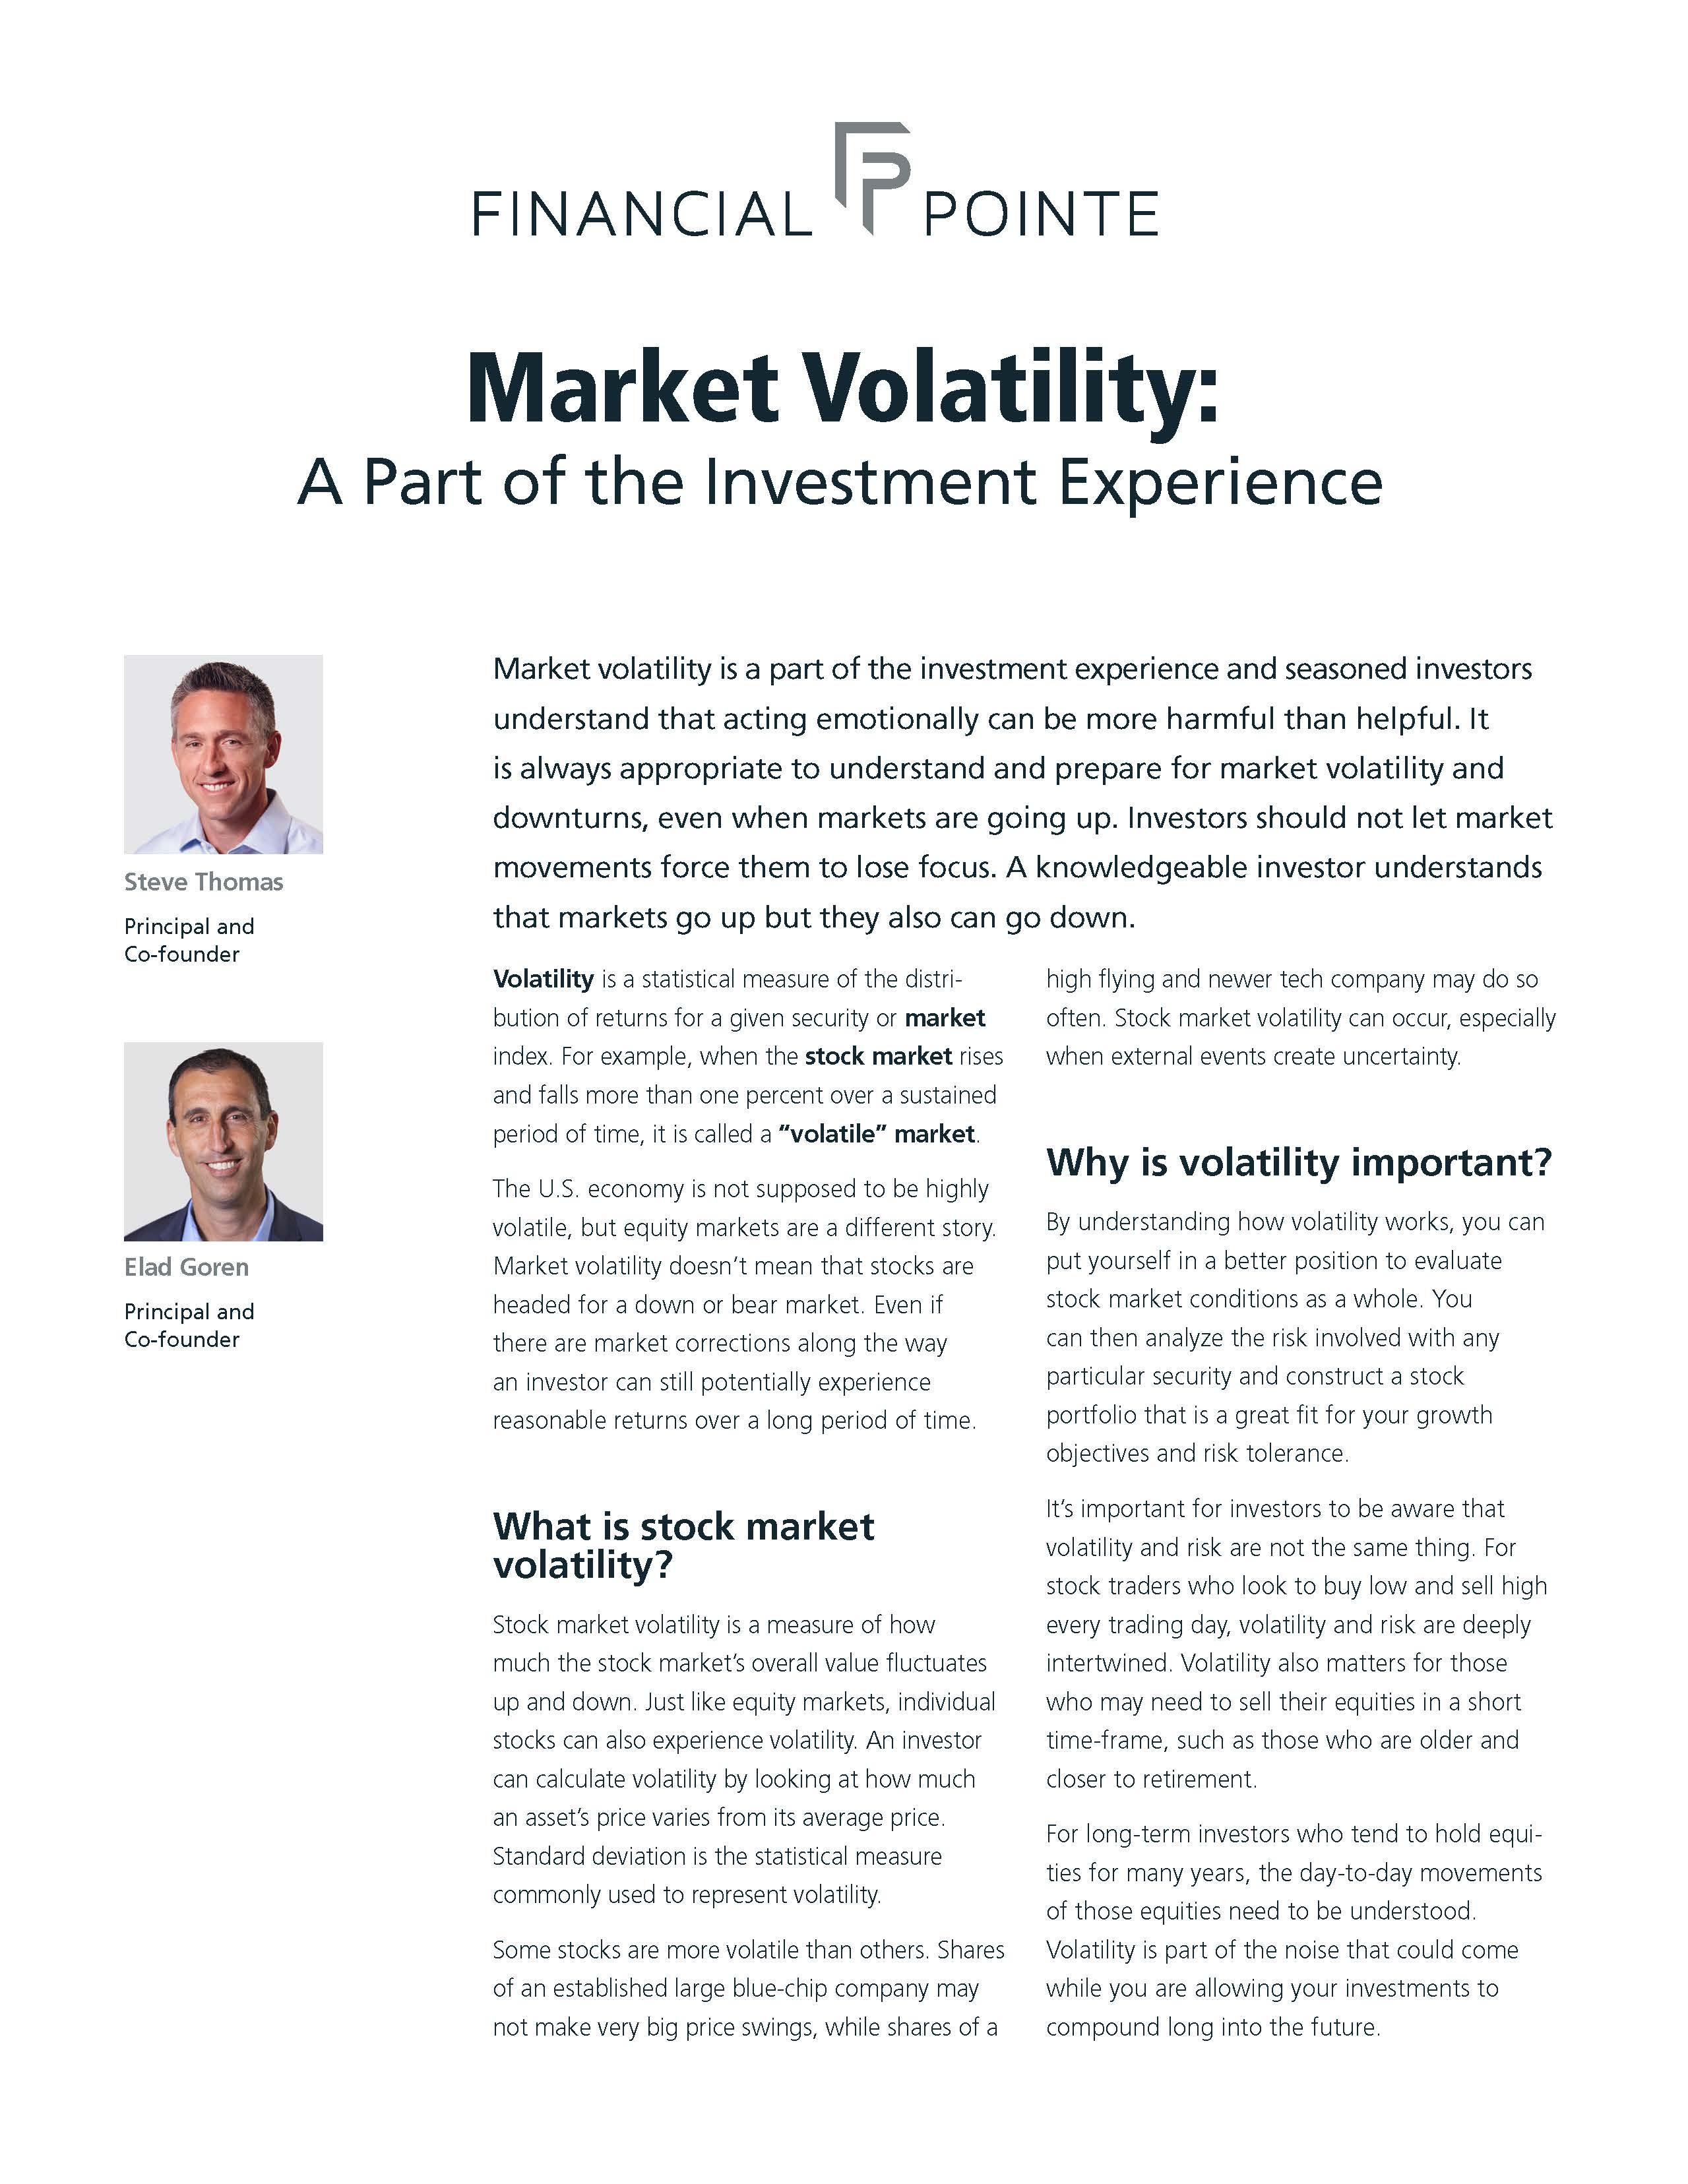 Market Volatility: A Part of the Investment Experience Thumbnail